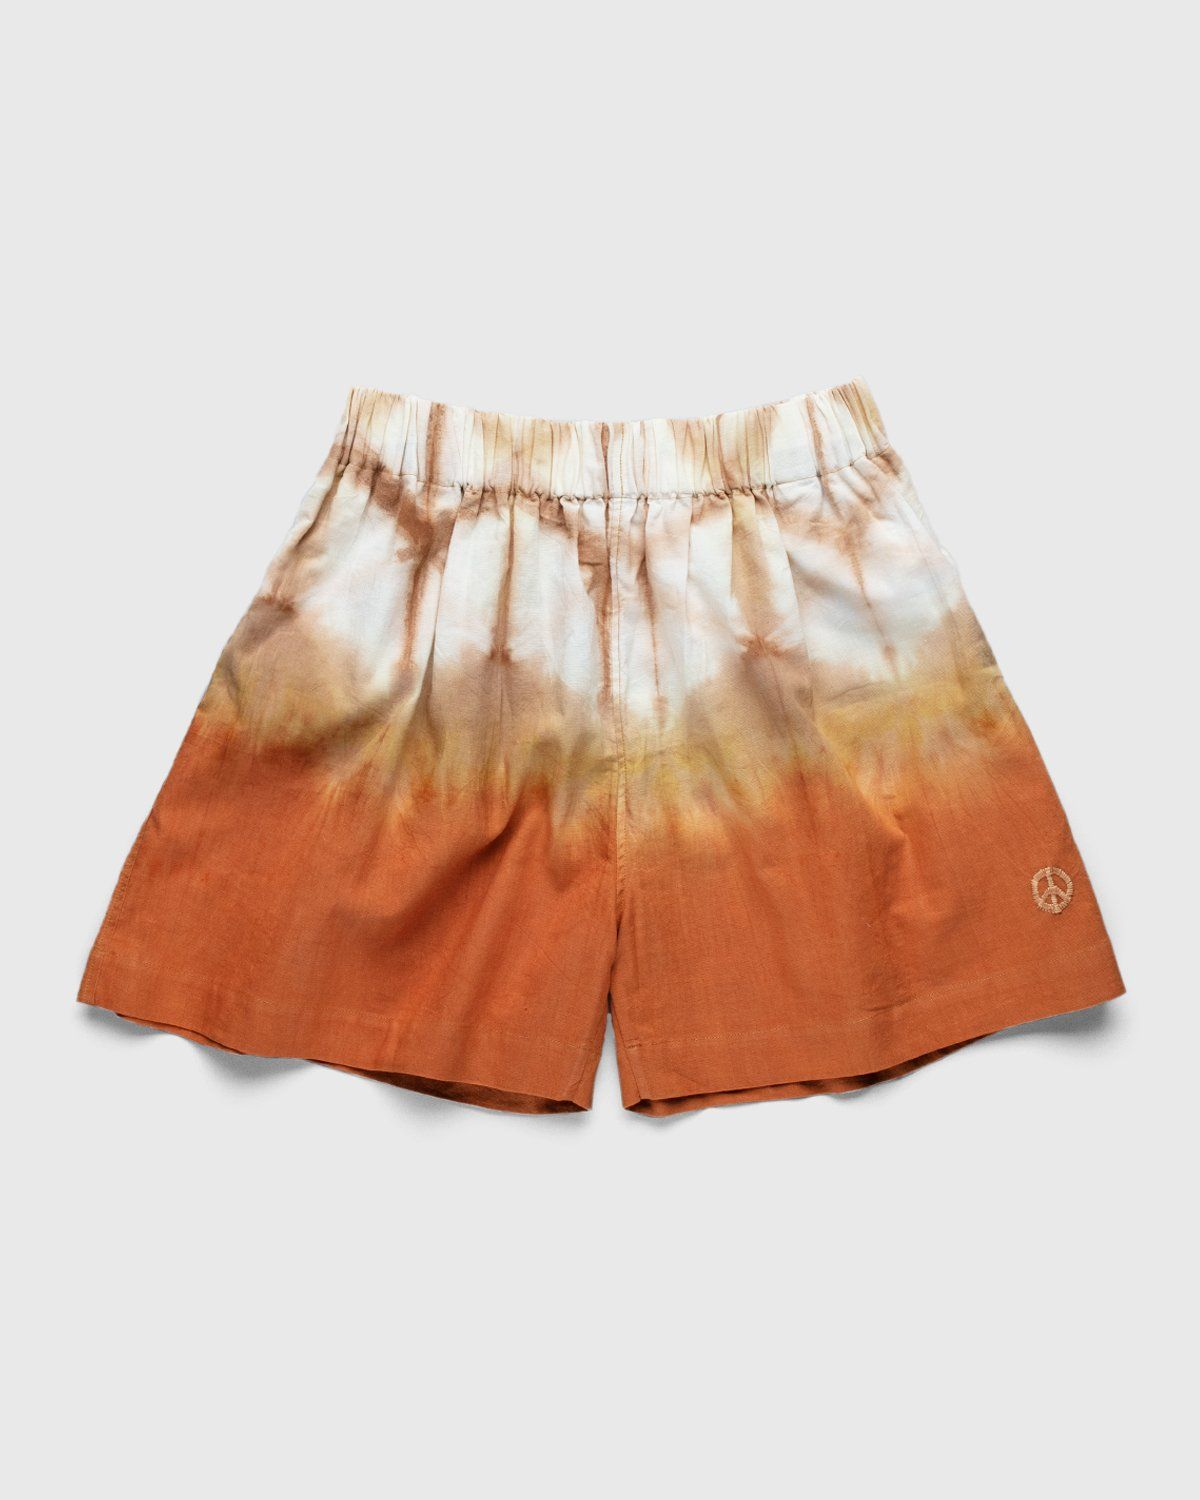 Story mfg. — Yeah Shorts Sun Clamp - Image 1